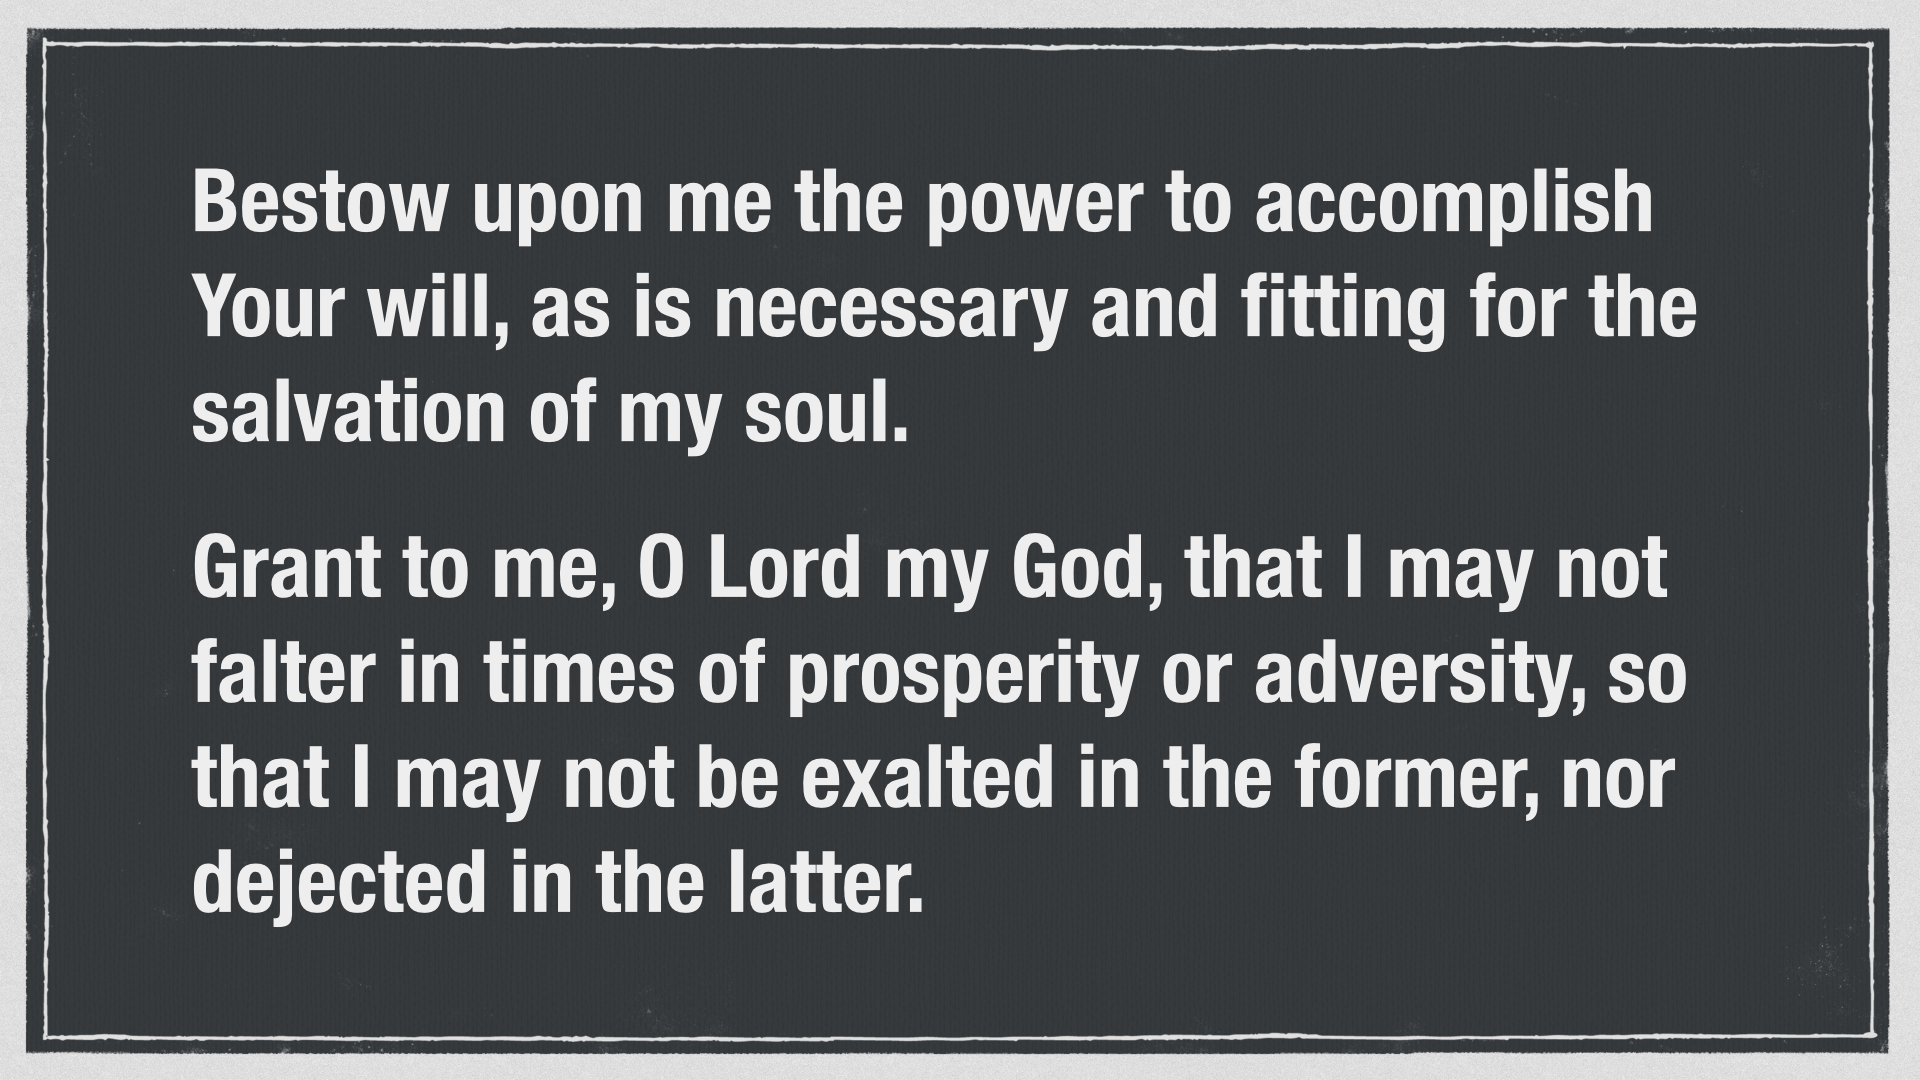 Prayer of St. Thomas Aquinas for ordering life wisely.003.jpg